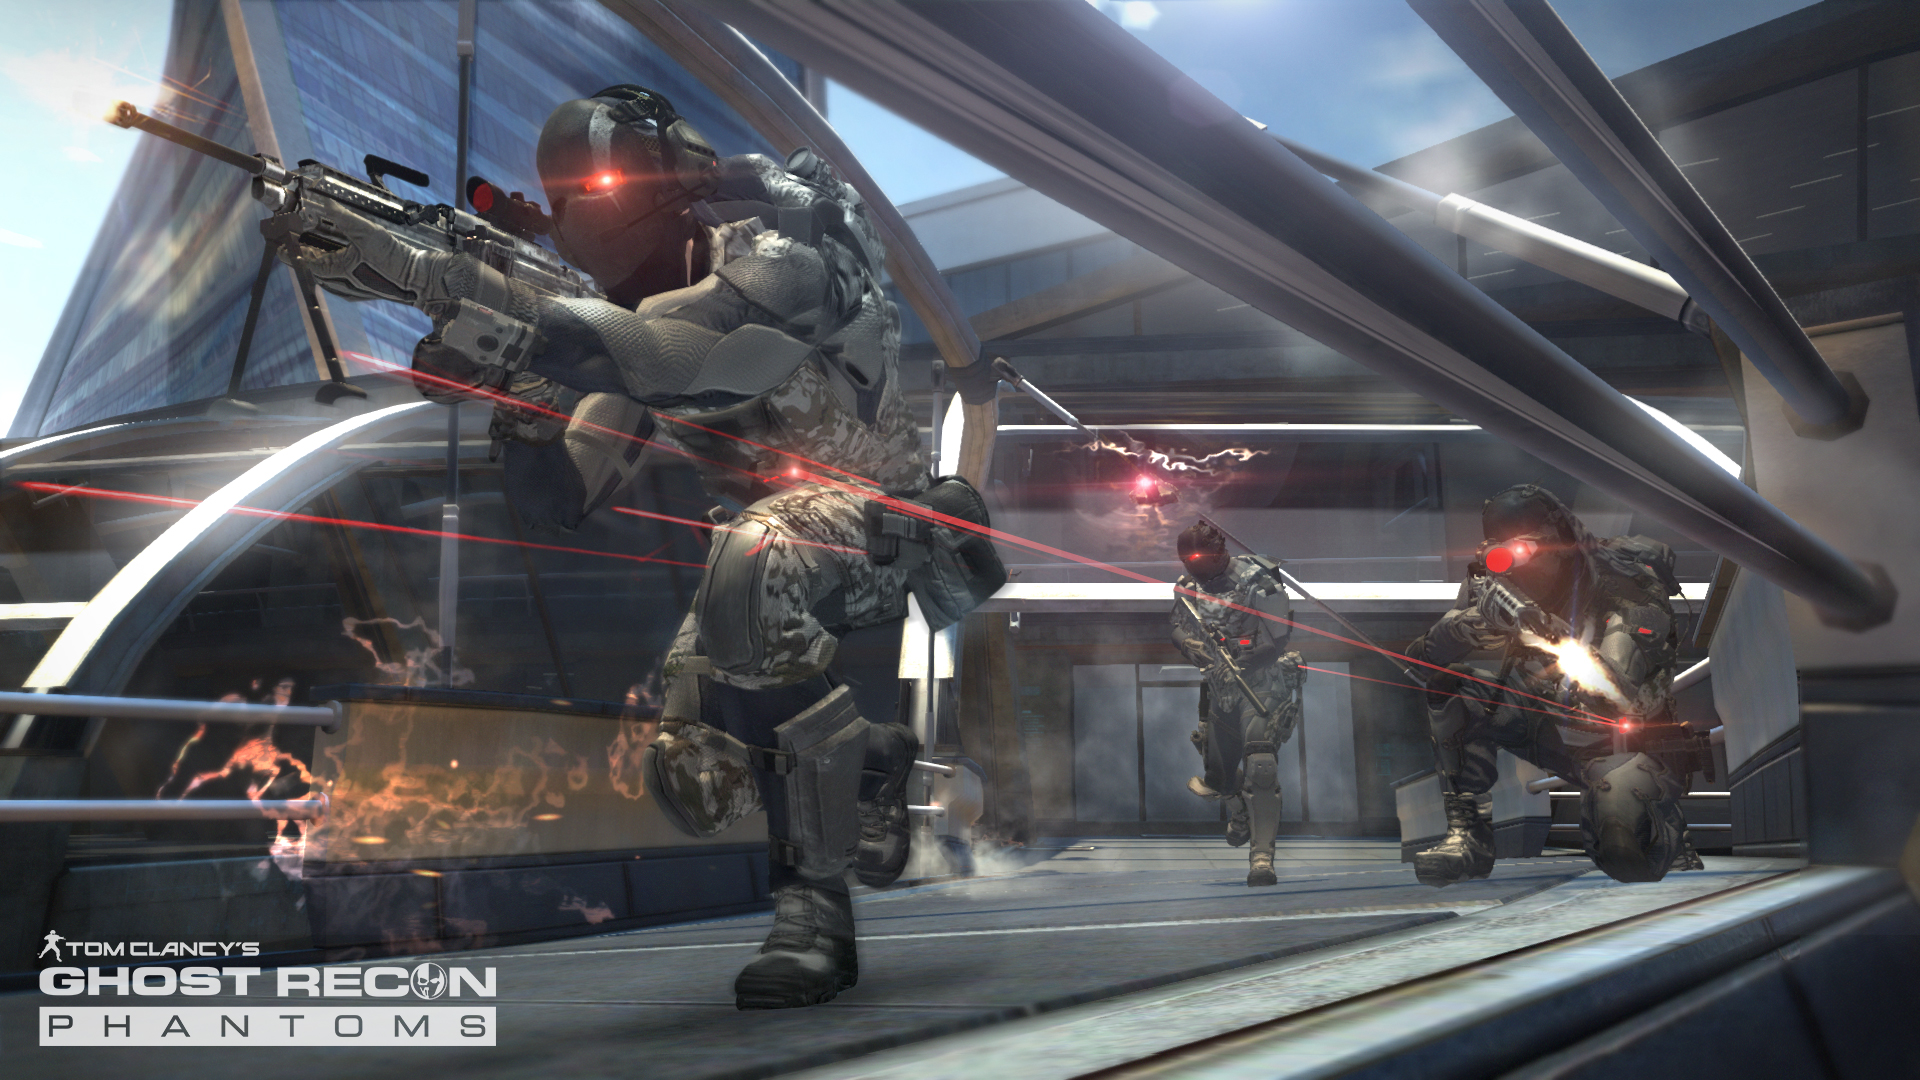 Ghost Recon Phantoms Review and Download on ghosts xbox 360 maps, ninja gaiden maps, recon training map maps, runescape maps, raven shield maps, ghost games, rainbow 6 vegas 2 maps, delta force maps, ghost soldiers, rainbow six vegas maps,